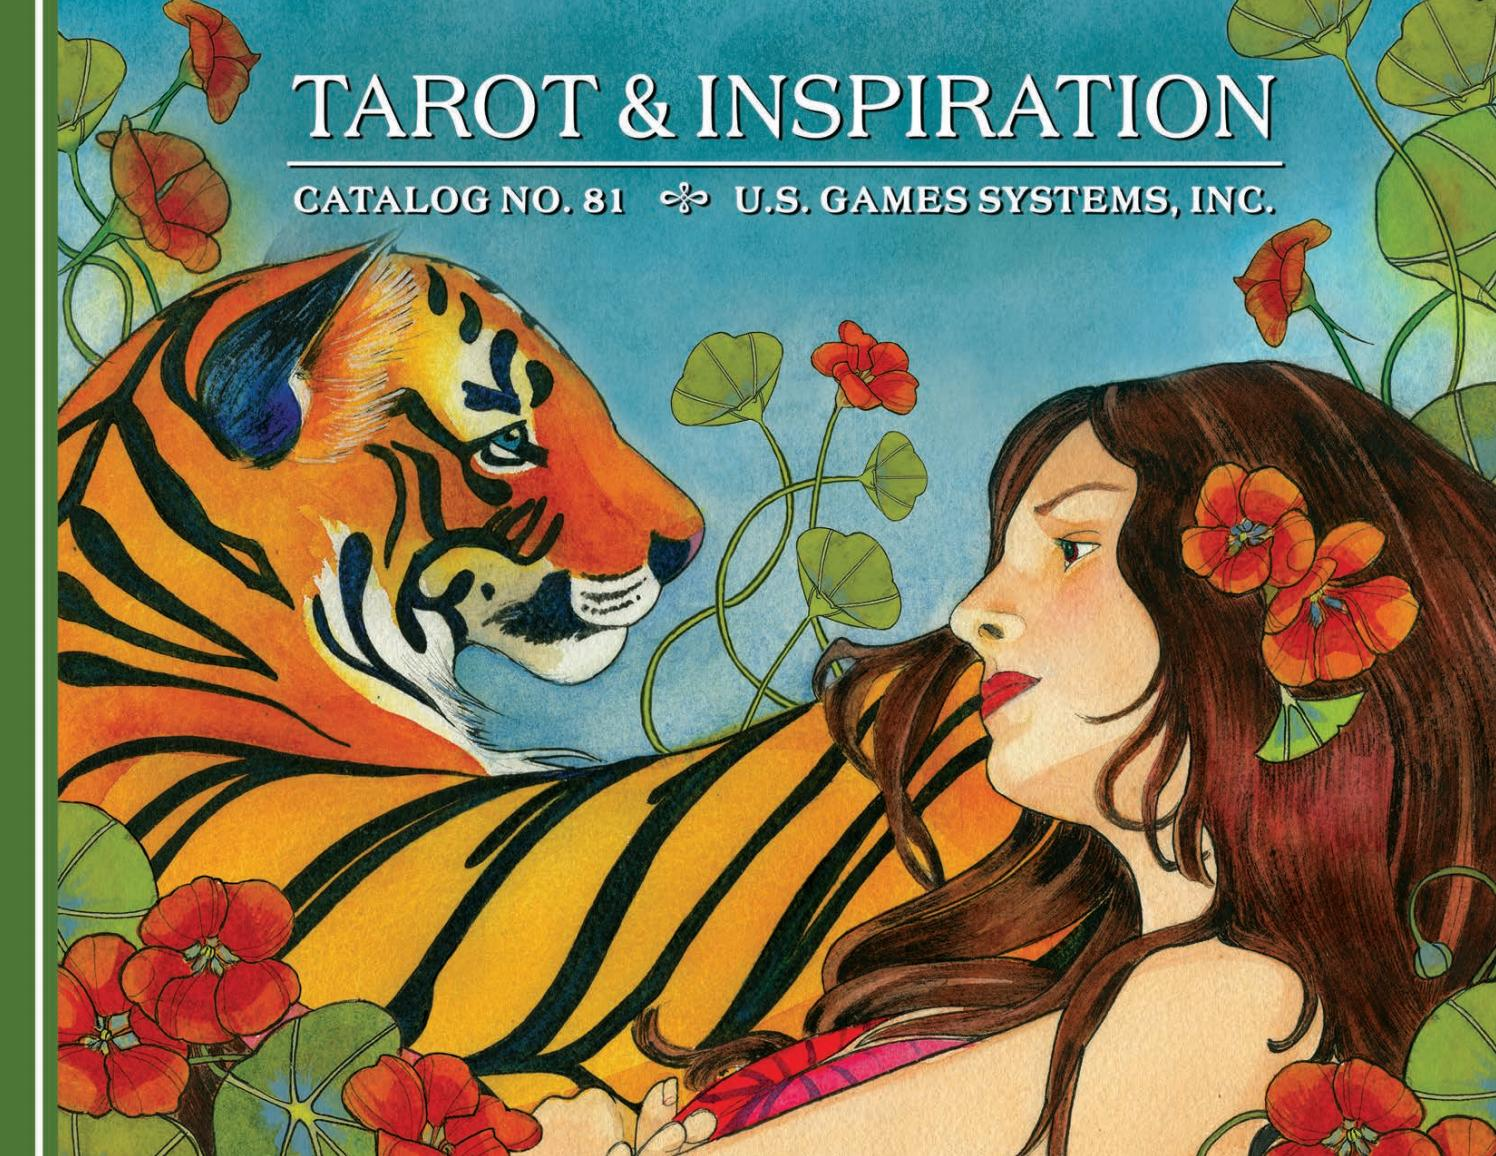 Tarot & Inspiration Catalog No. 81 by U.S. Games Systems, Inc. - issuu